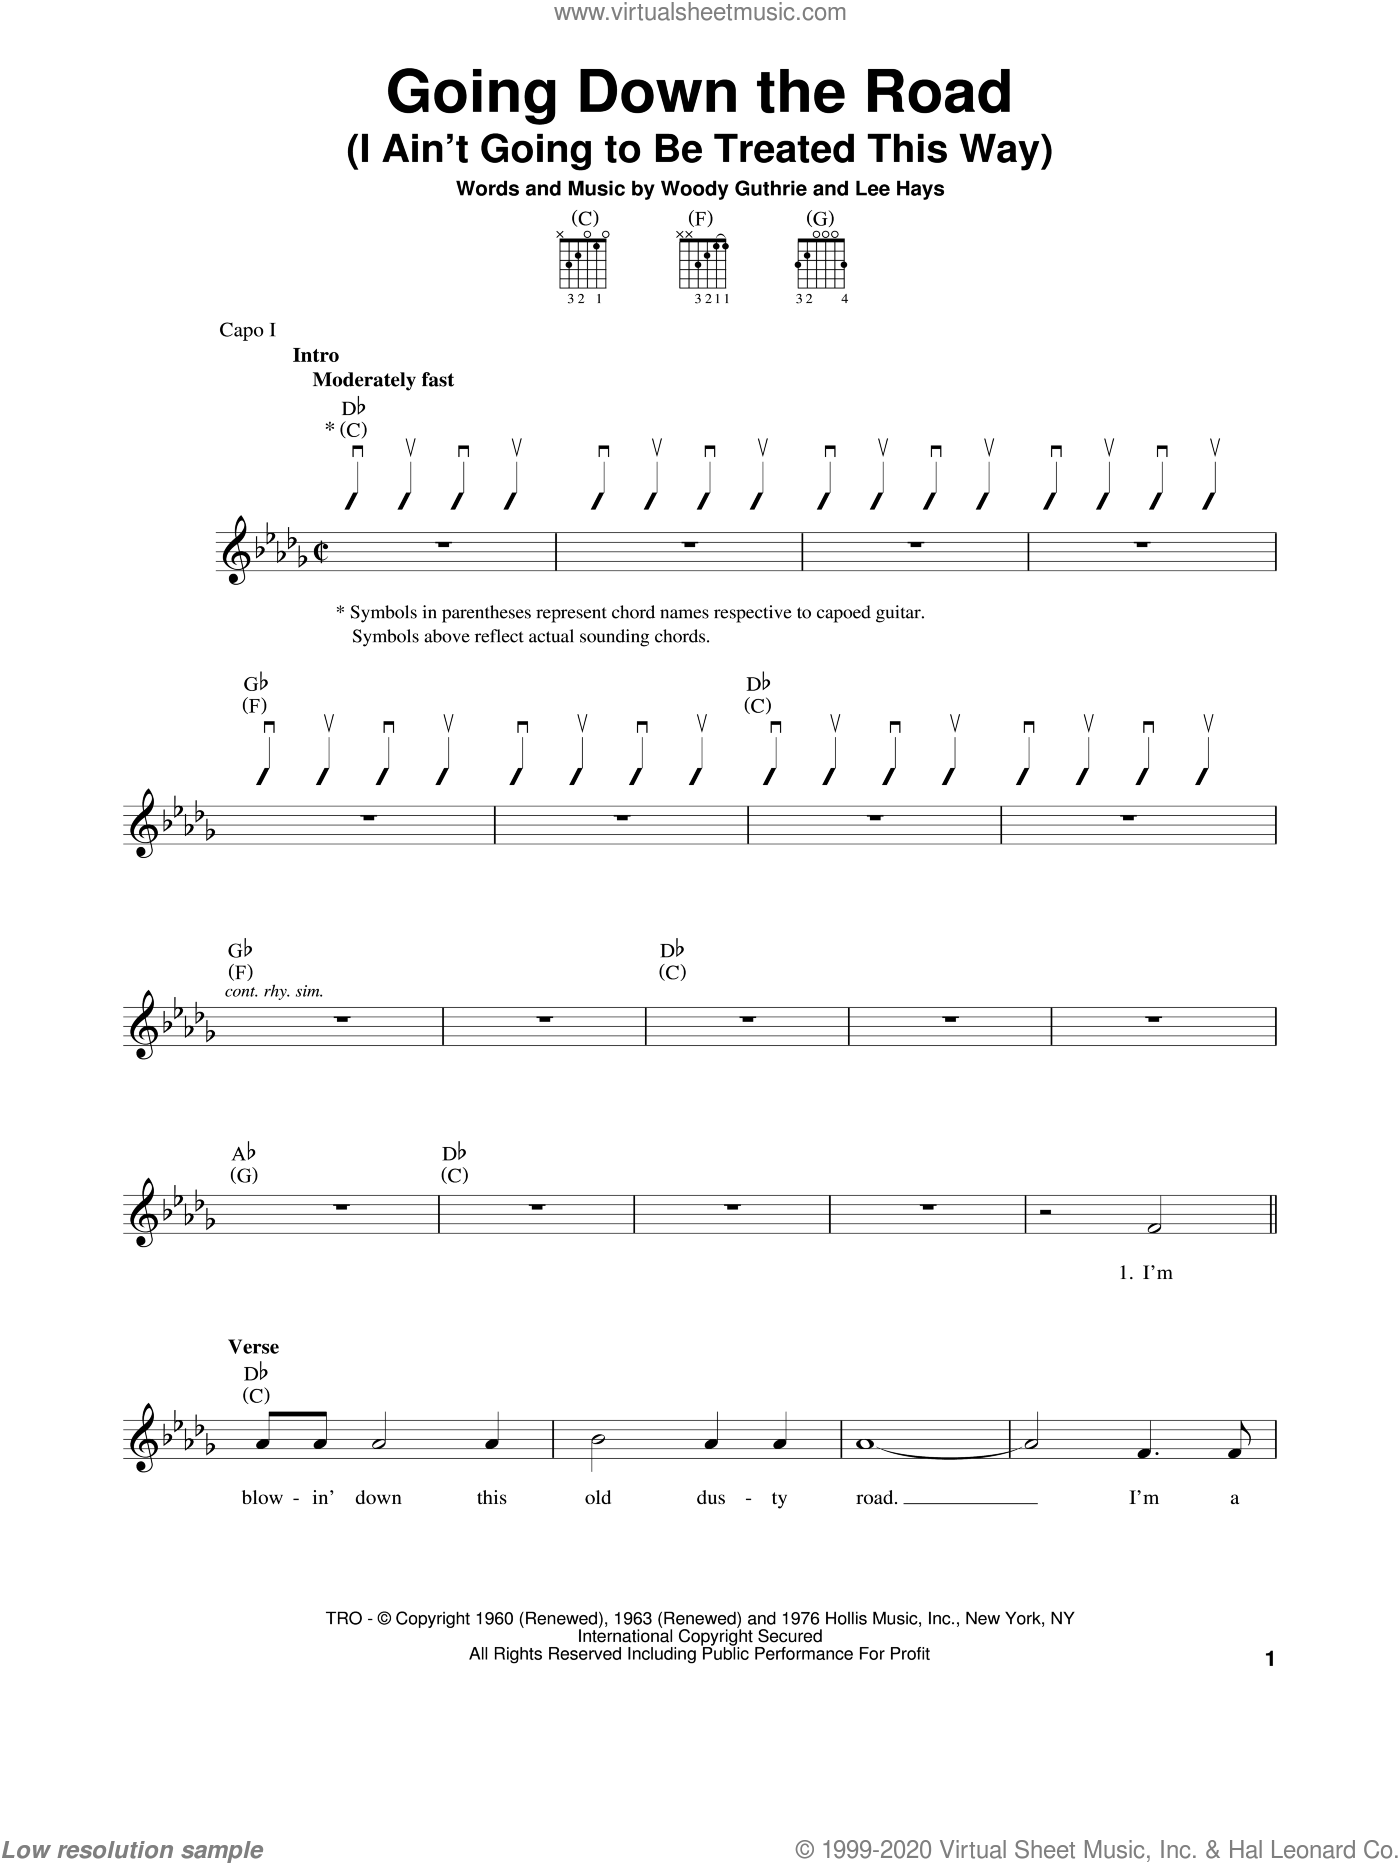 Going Down The Road (I Ain't Going To Be Treated This Way) sheet music for guitar solo (chords) by Woody Guthrie, easy guitar (chords). Score Image Preview.